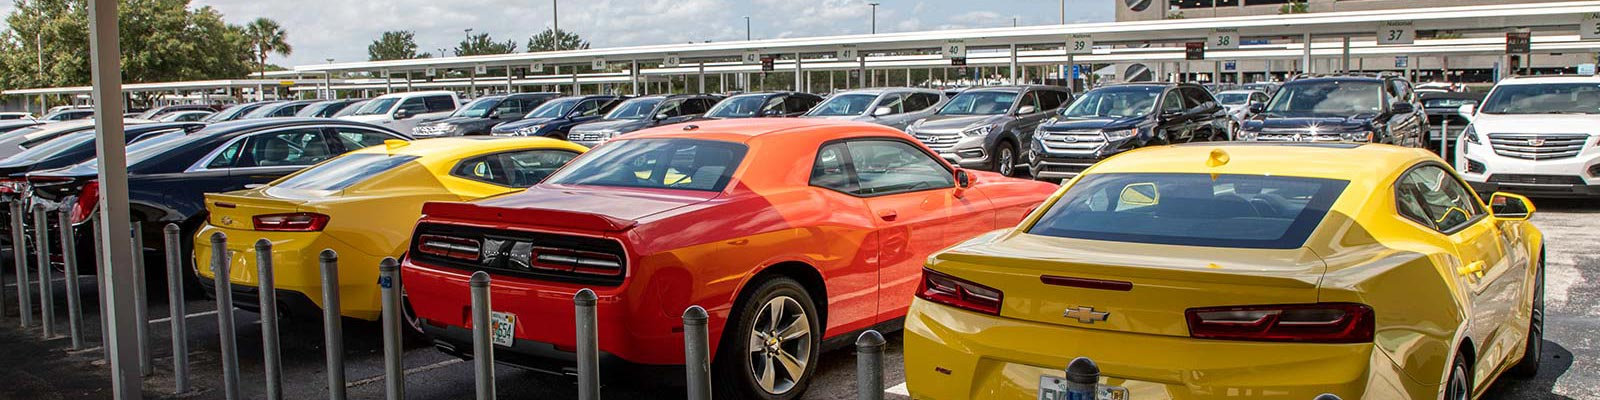 Rental Car Companies Orlando Sanford International Airport